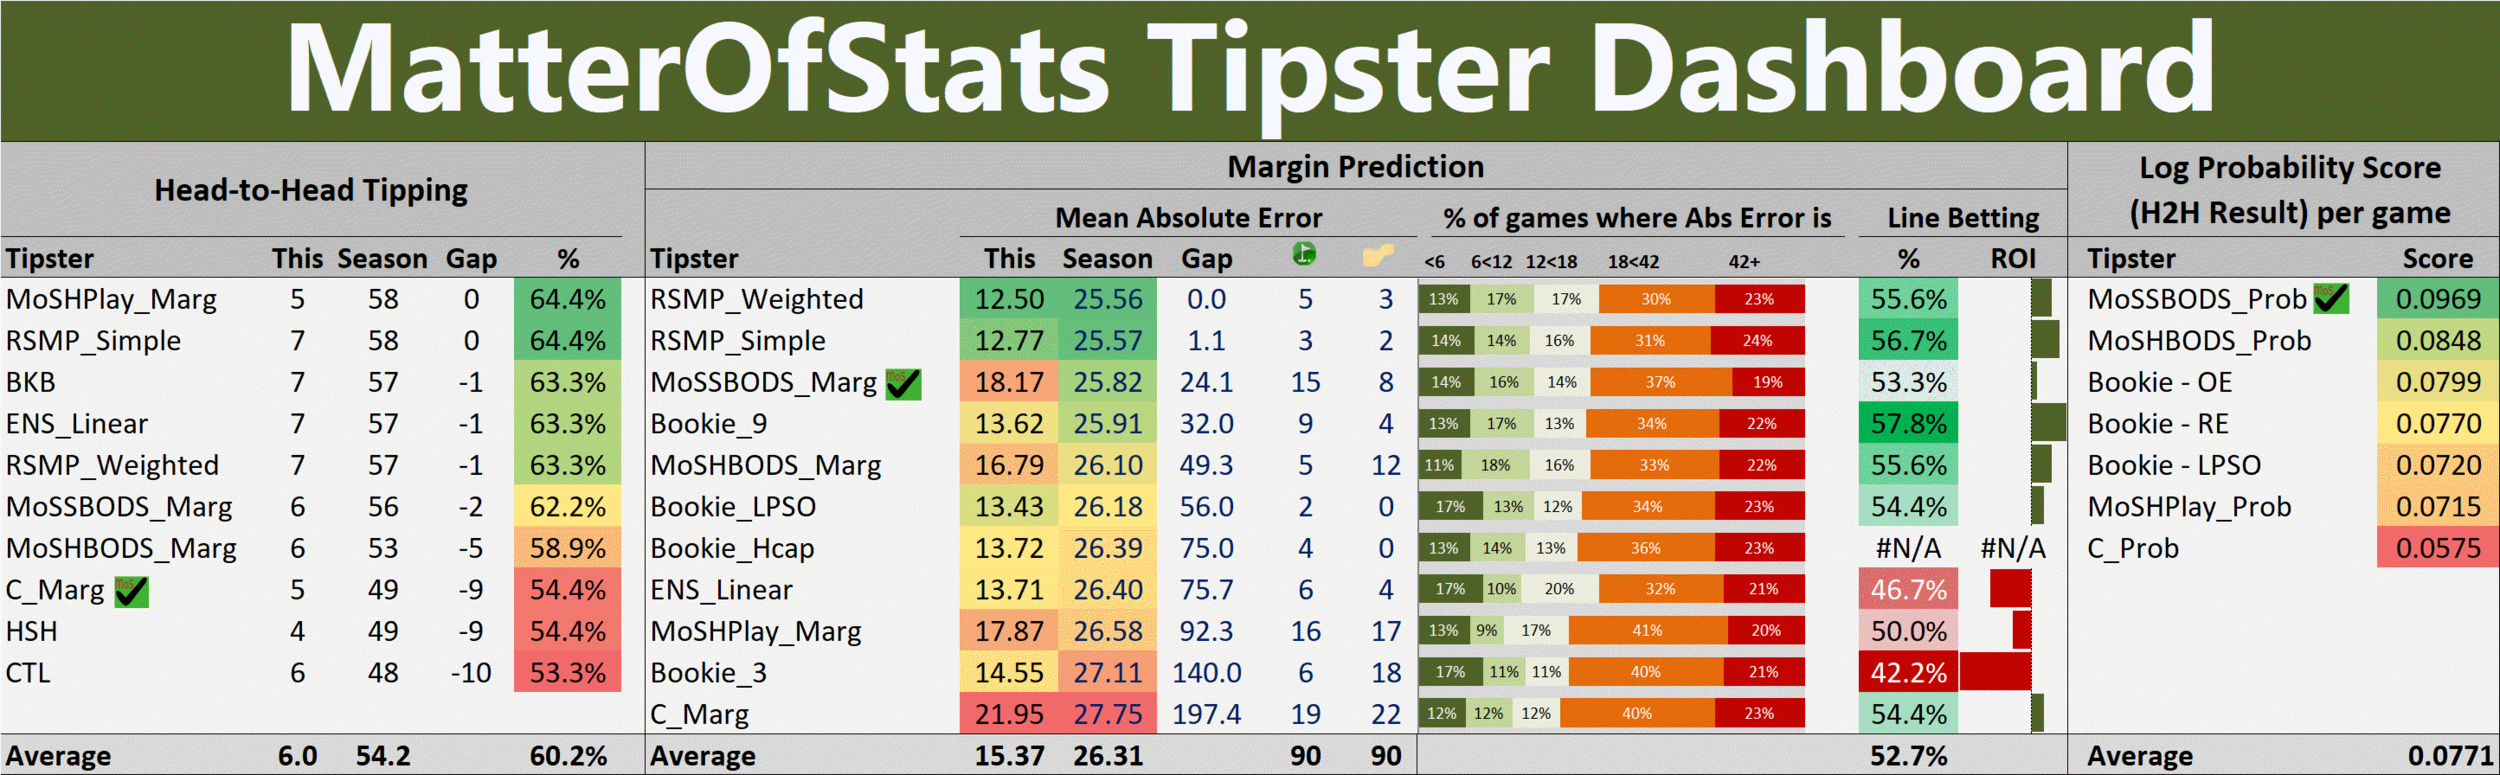 R10 - Tipster Dashboard.png